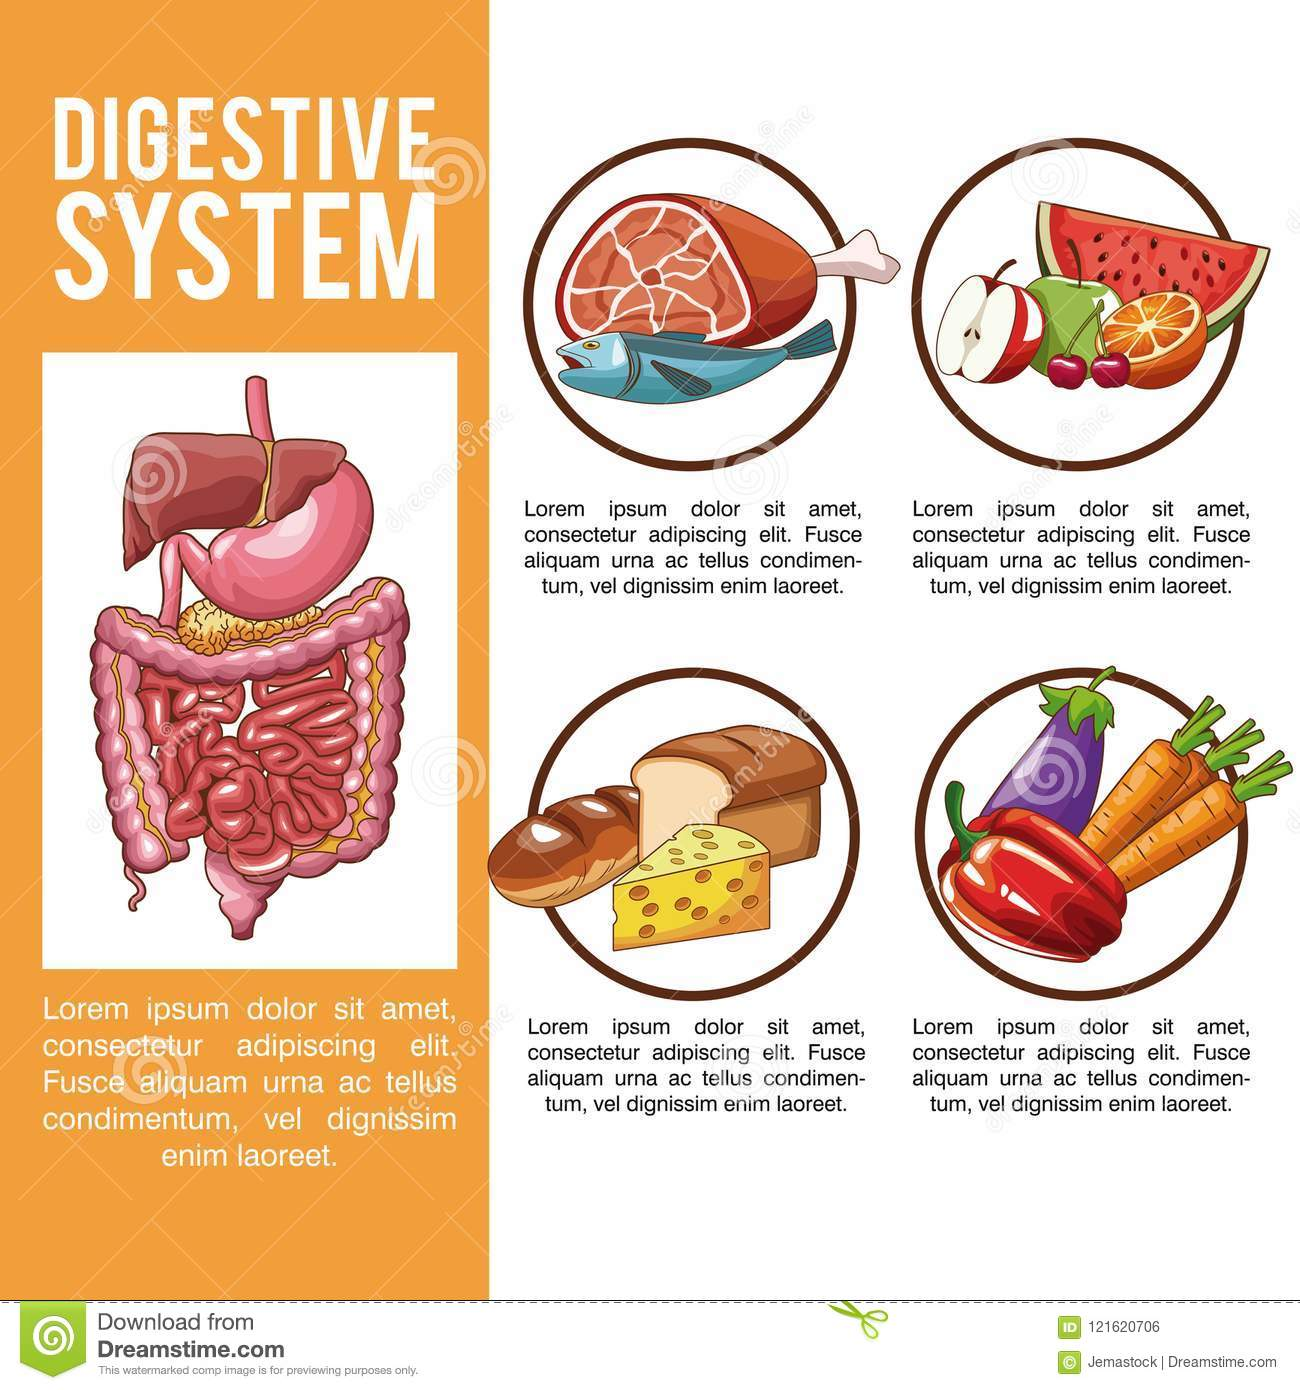 Digestive System Poster Stock Vector Illustration Of Fruits 121620706